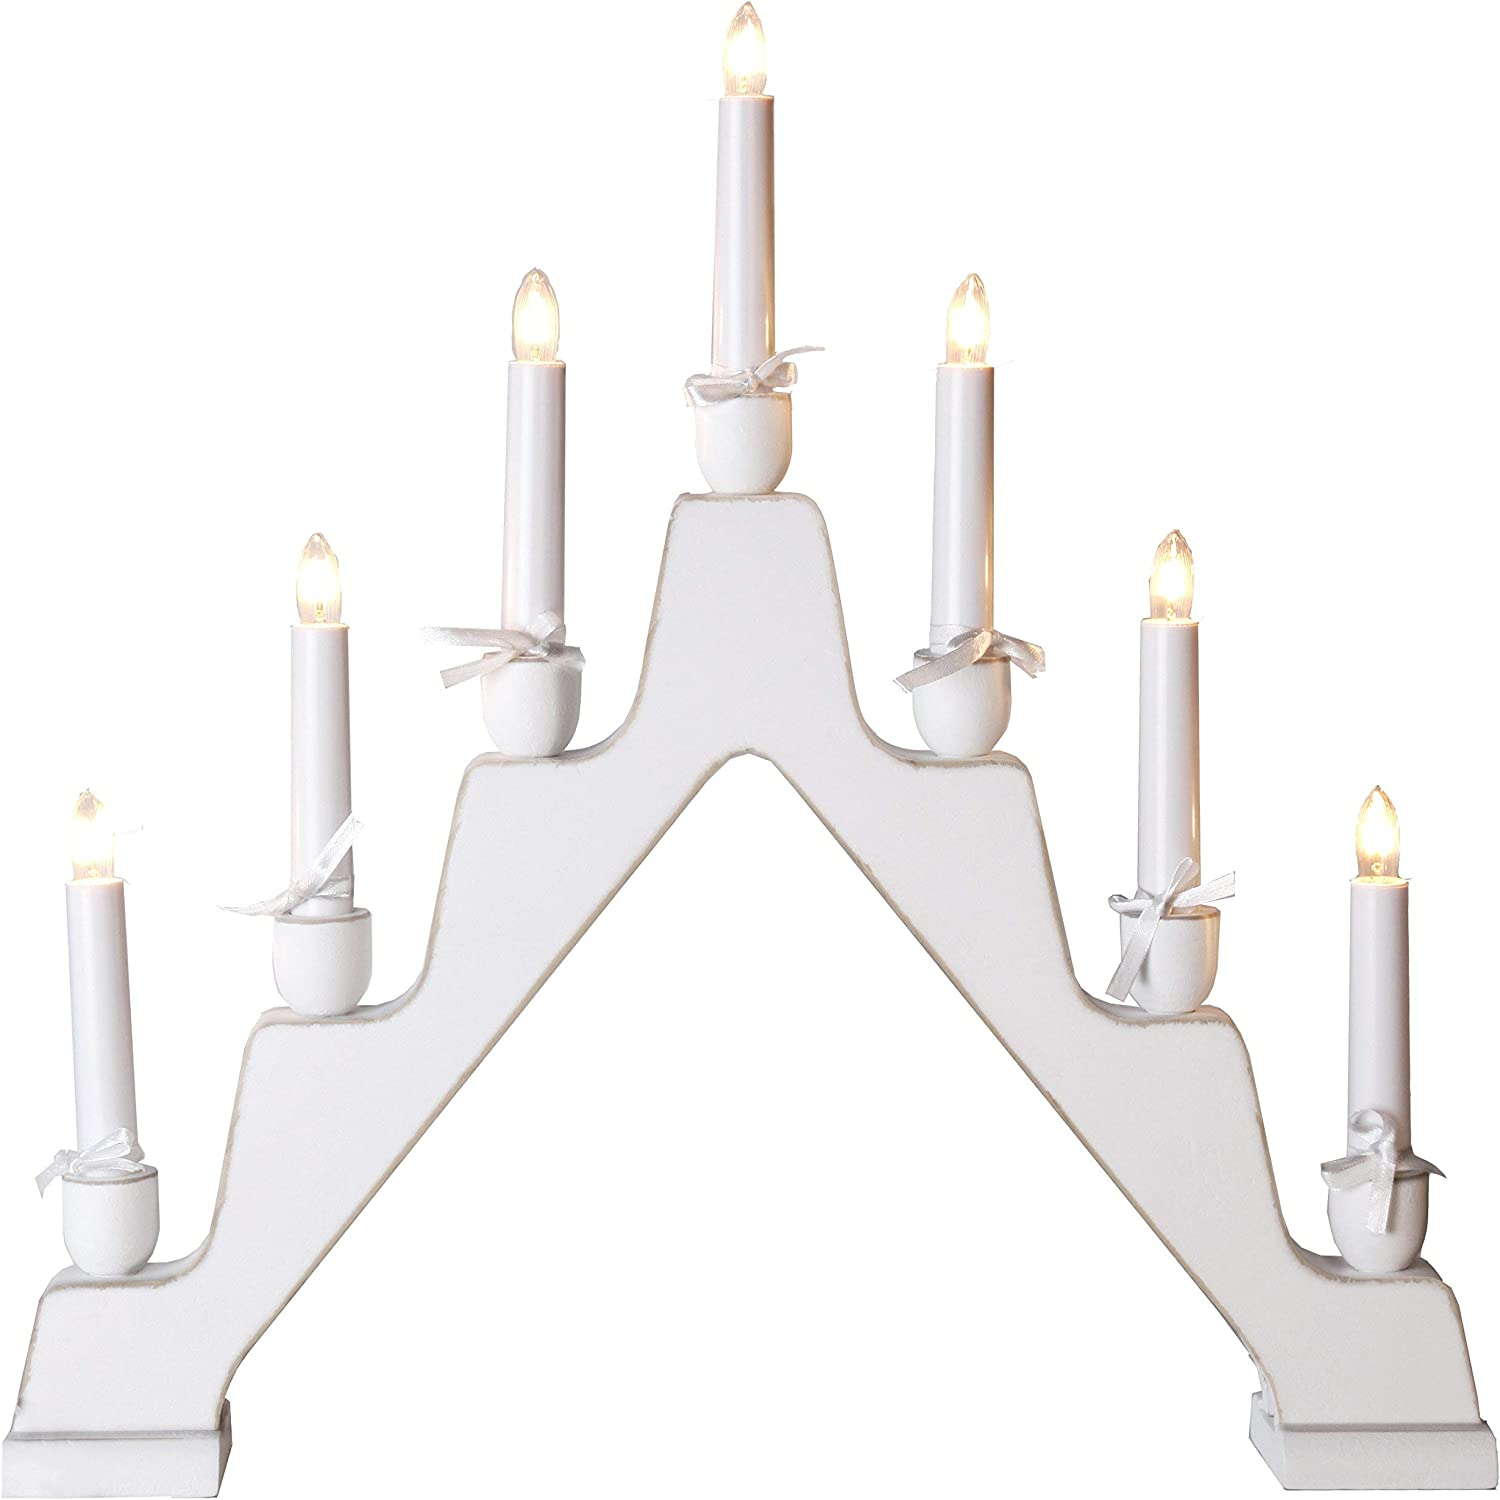 Star Wood 7-Light Maja Candlestick, White  Shabby